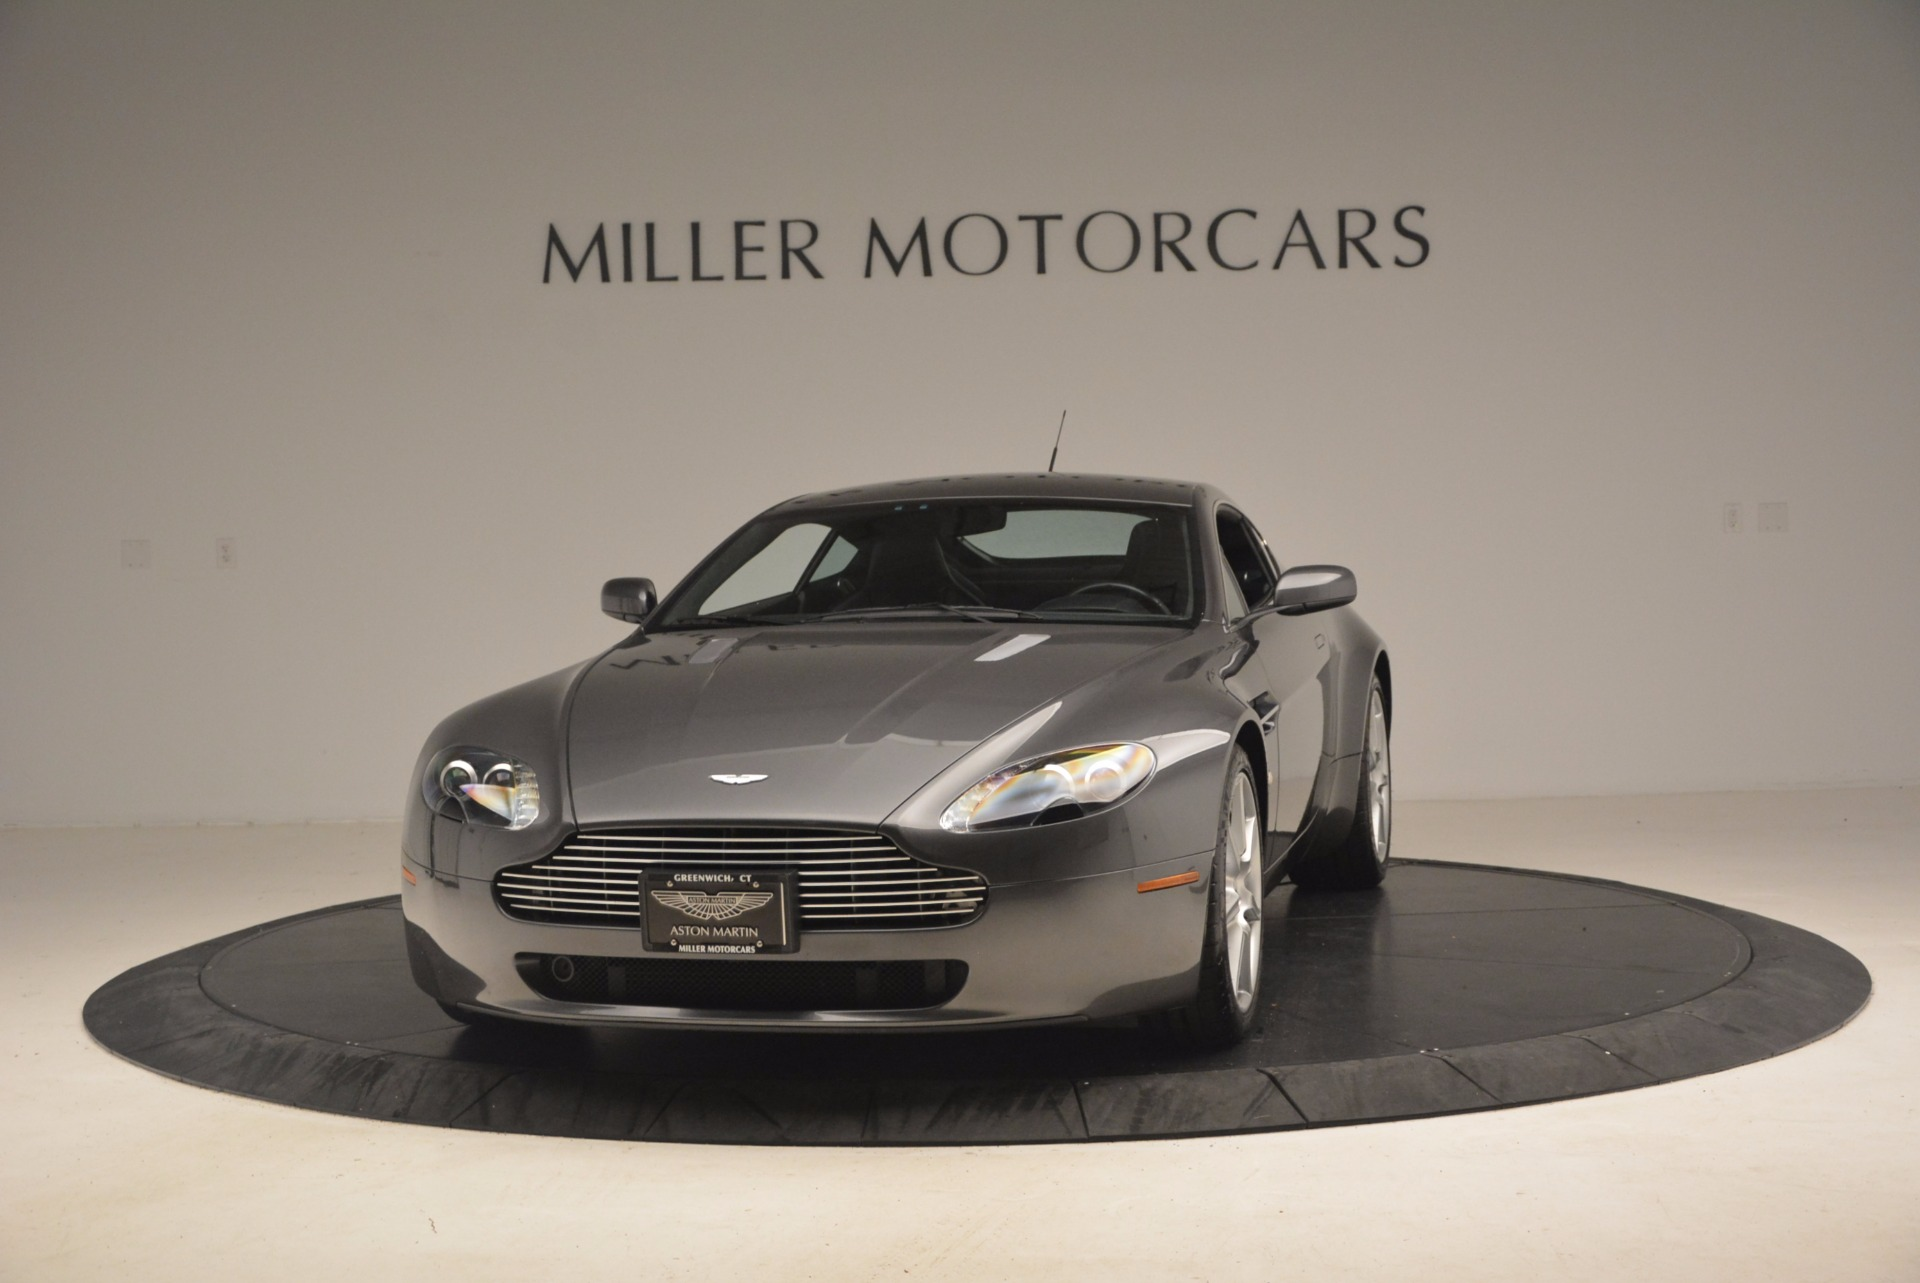 Used 2006 Aston Martin V8 Vantage Coupe for sale Sold at Rolls-Royce Motor Cars Greenwich in Greenwich CT 06830 1